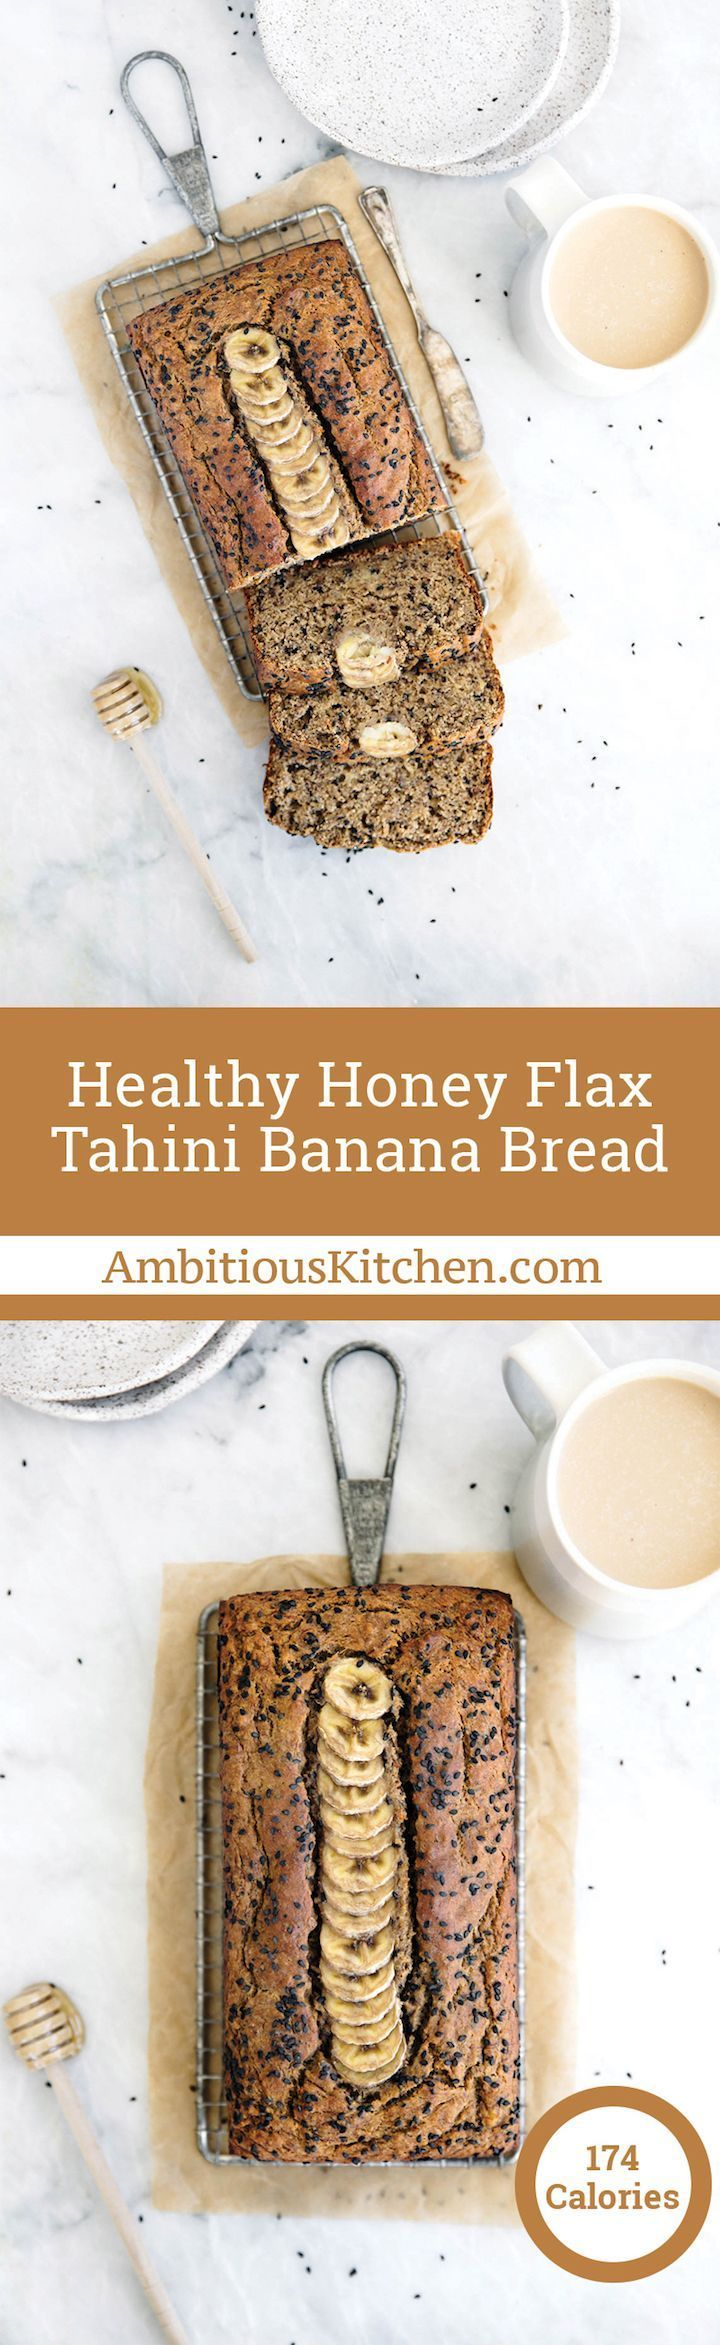 Healthy Tahini Banana Bread made with whole wheat flour, flaxseed, sesame seeds and naturally sweetened with honey. This healthy bread is wonderful toasted with a drizzle of honey. All clean eating ingredients are used for this healthy breakfast recipe. Pin now to try later!